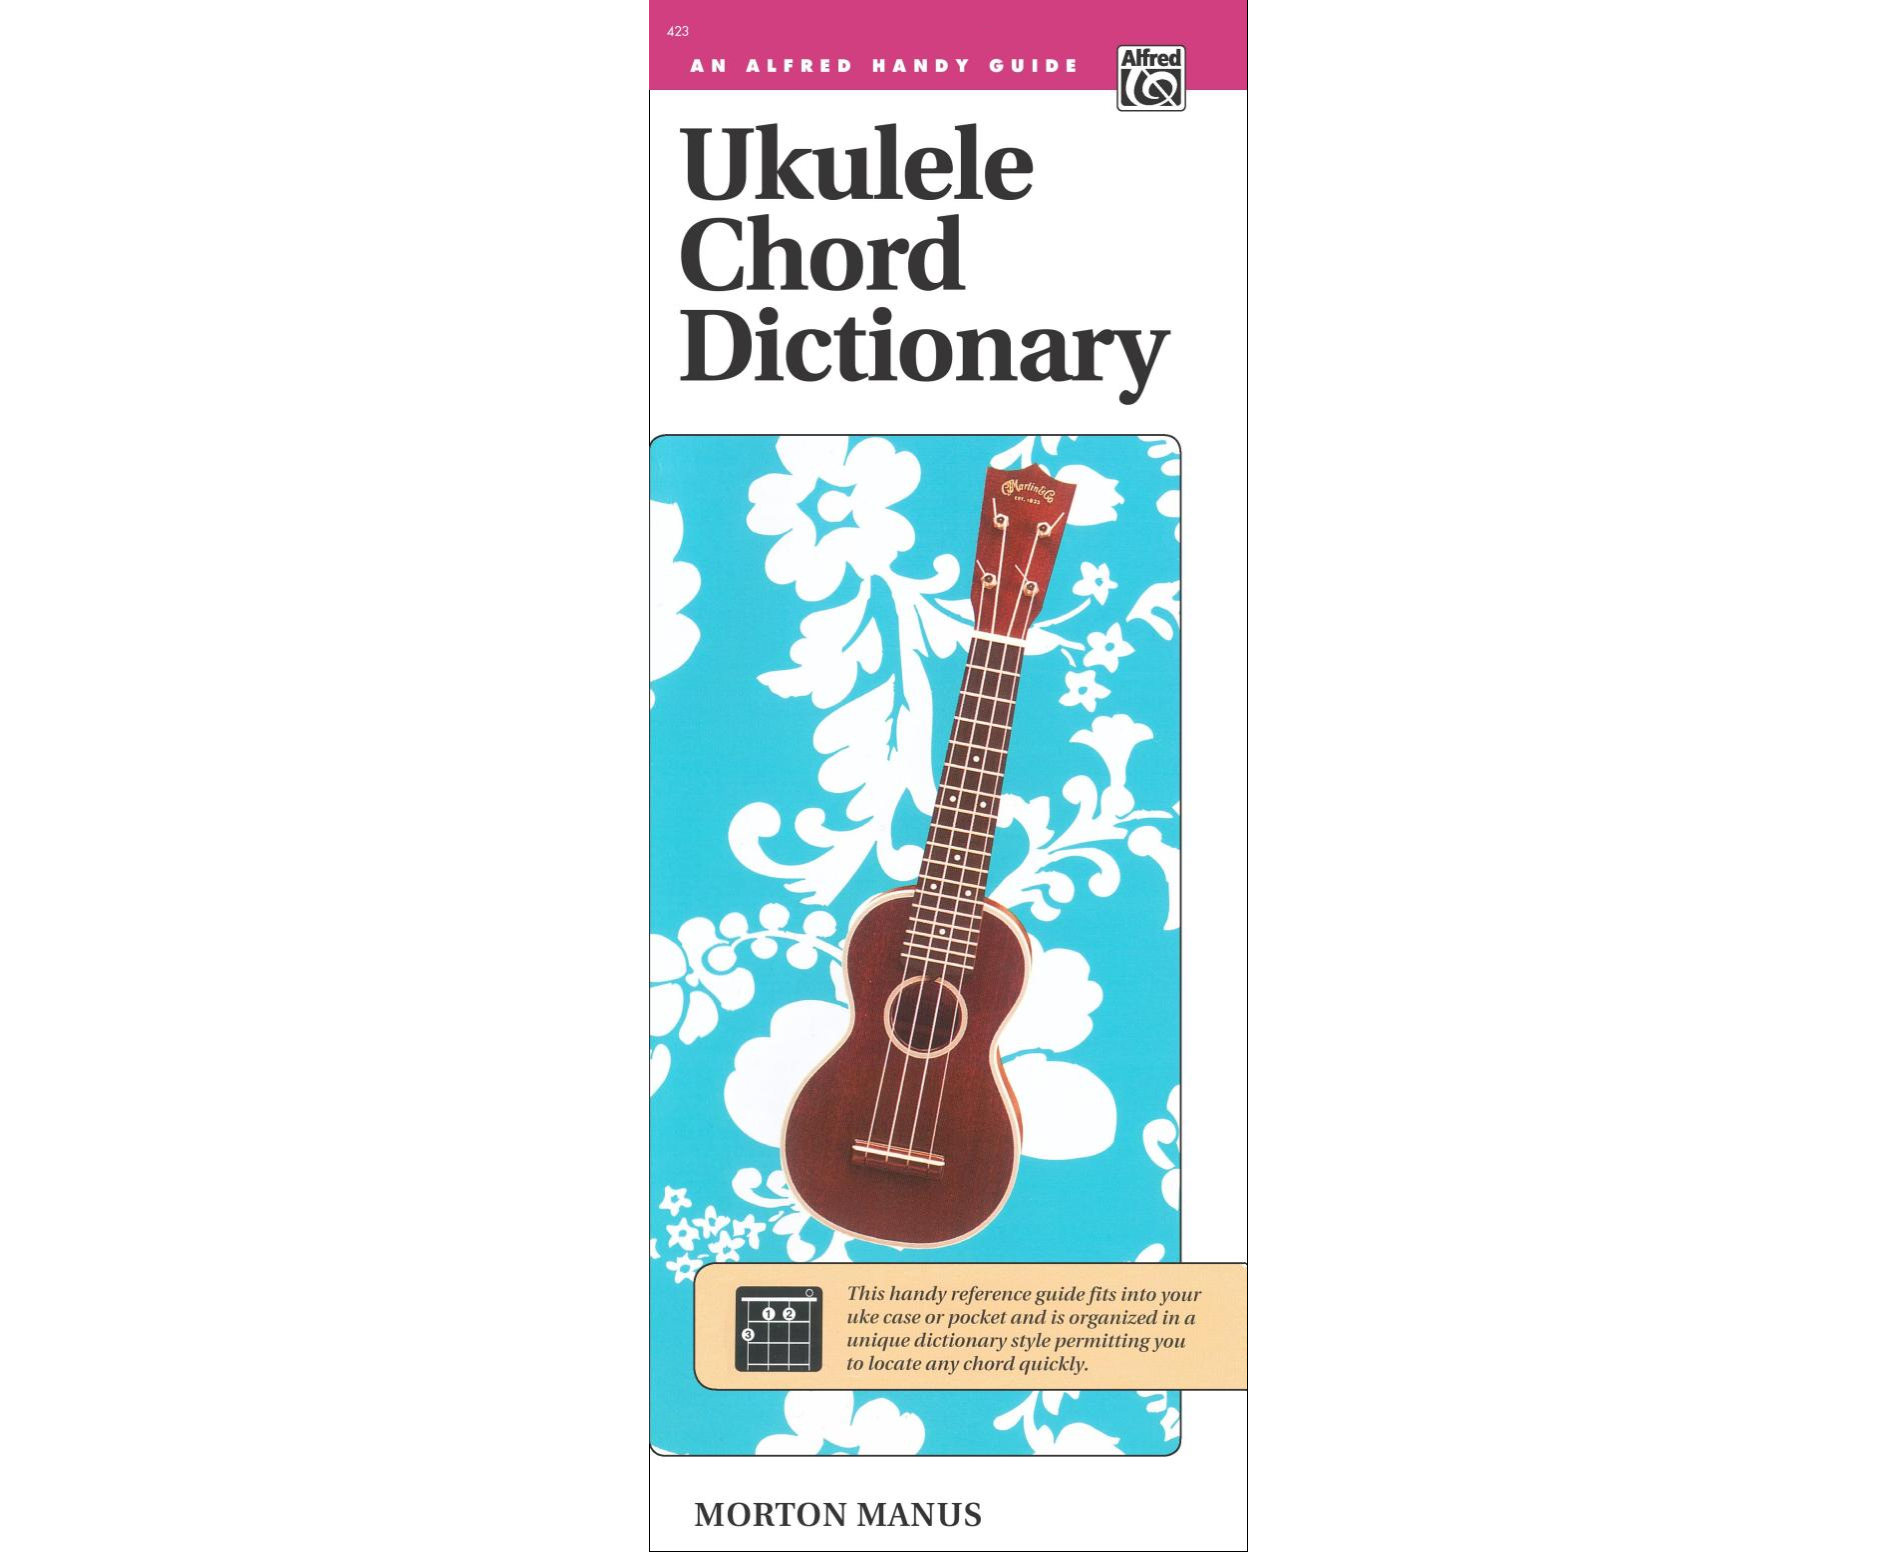 Ukulele chord dictionary an alfred handy guide 038081022260 ukulele chord dictionary an alfred handy guide hexwebz Image collections